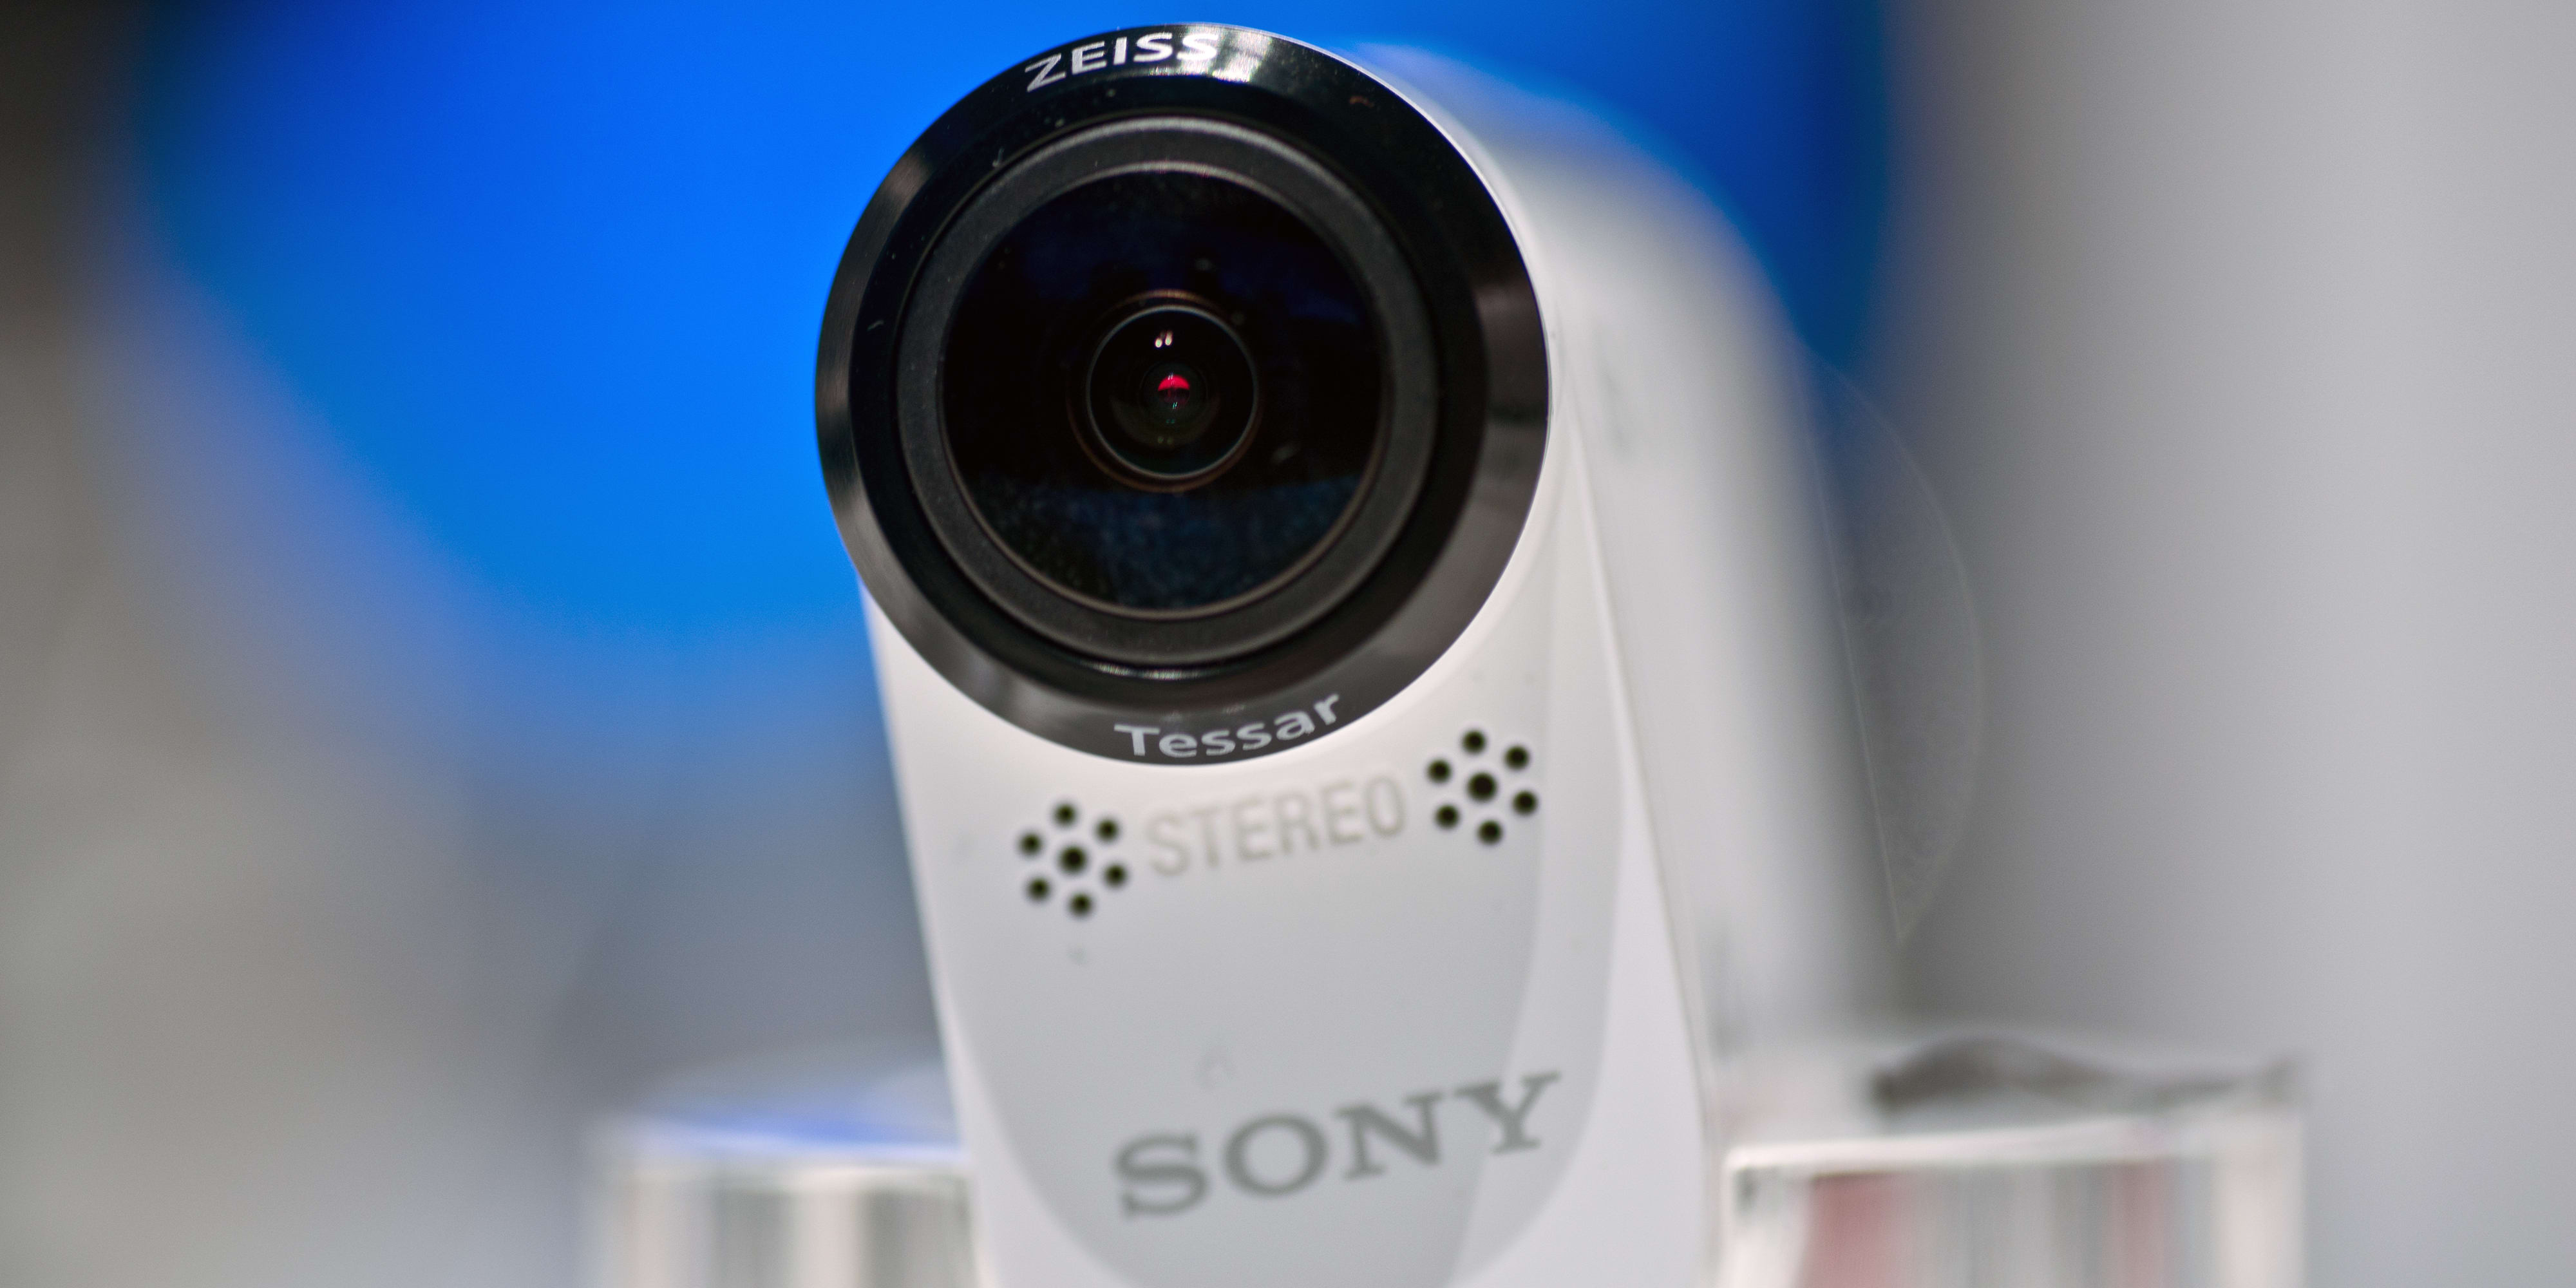 A photograph of the Sony Action Cam FDR-X1000V's front.